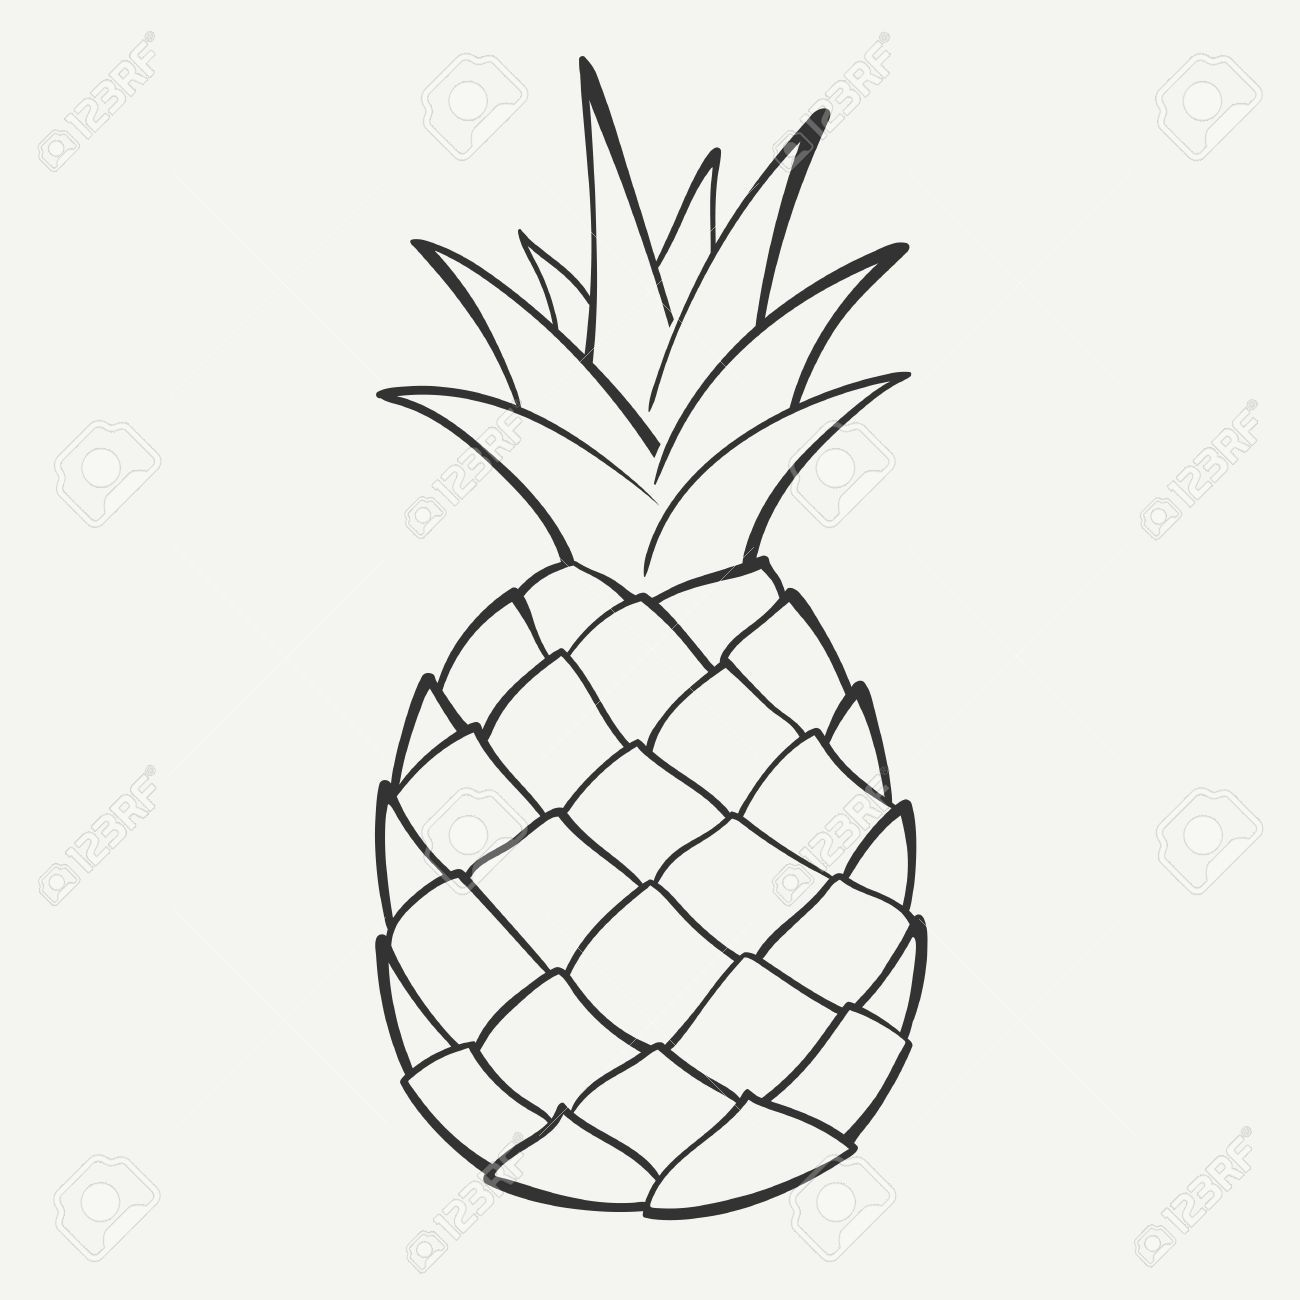 pineapple clipart black and white outline